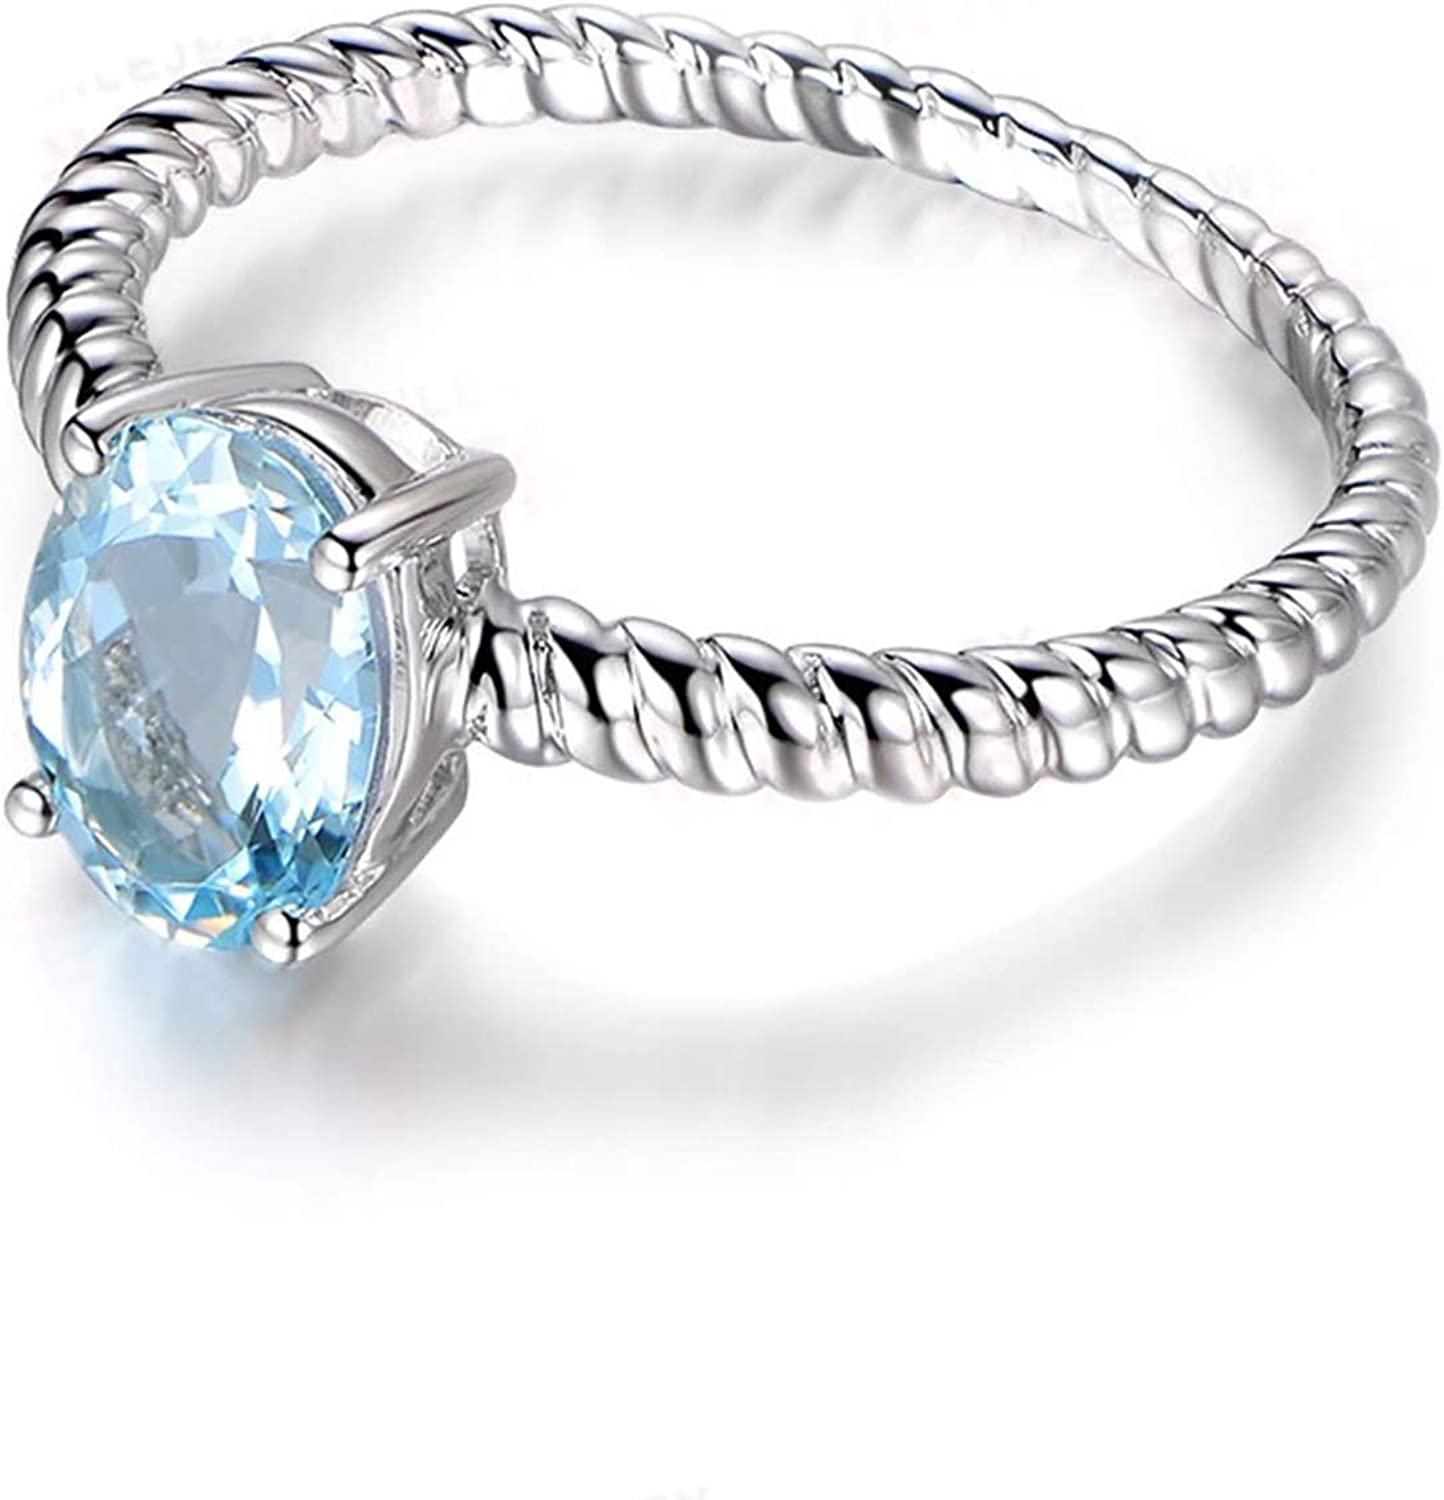 AMDXD Jewelry 925 Sterling Silver Promise Ring Girl Round Cut Topaz Round Rings